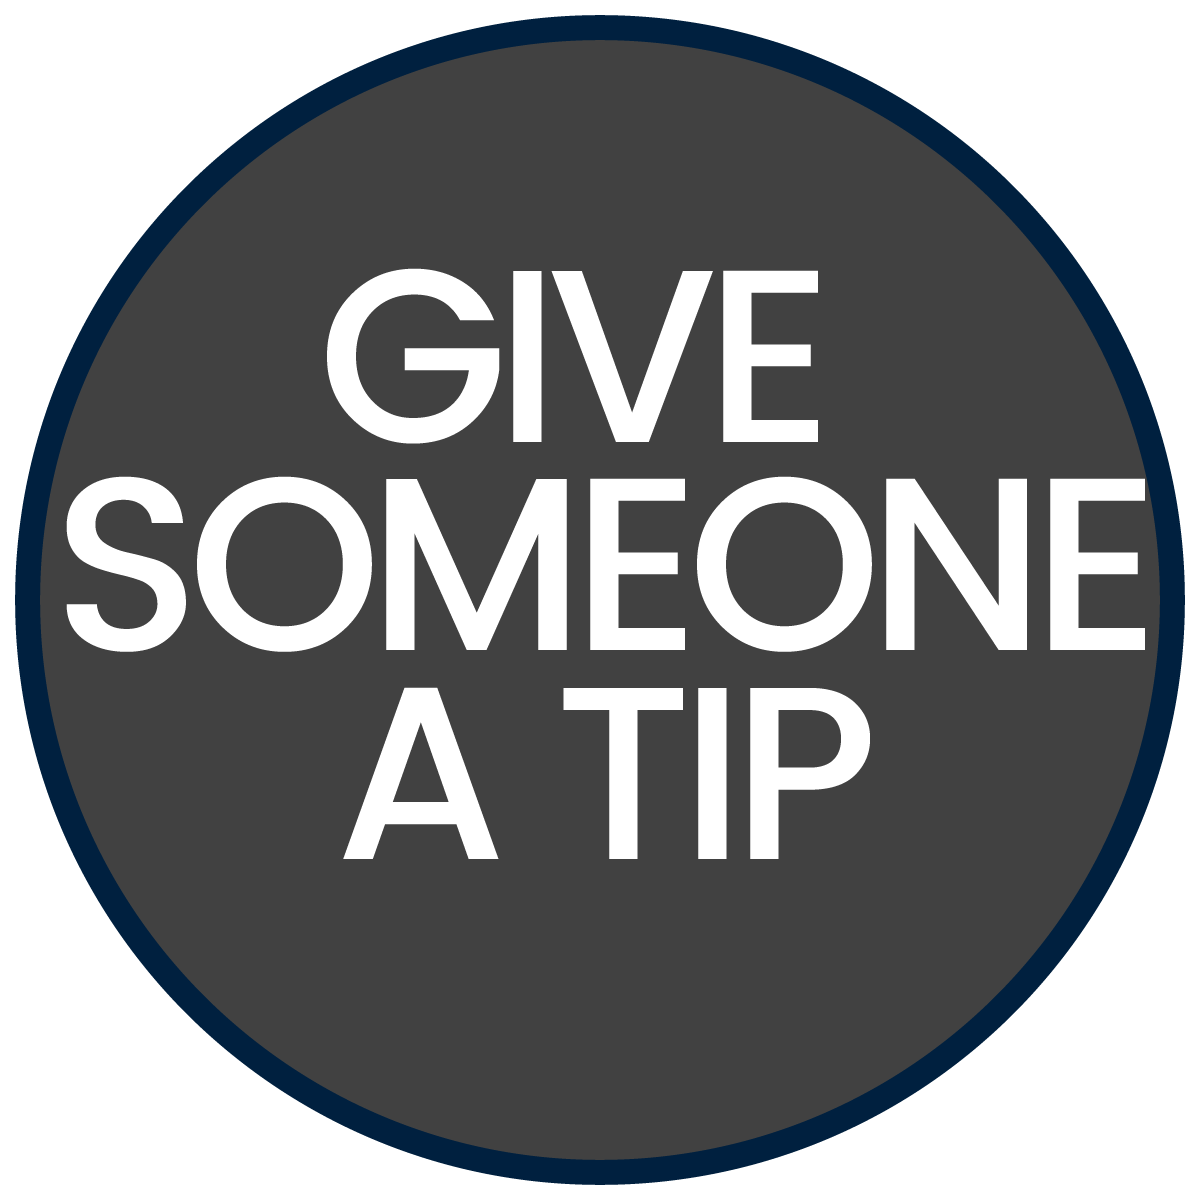 Give Someone a Tip